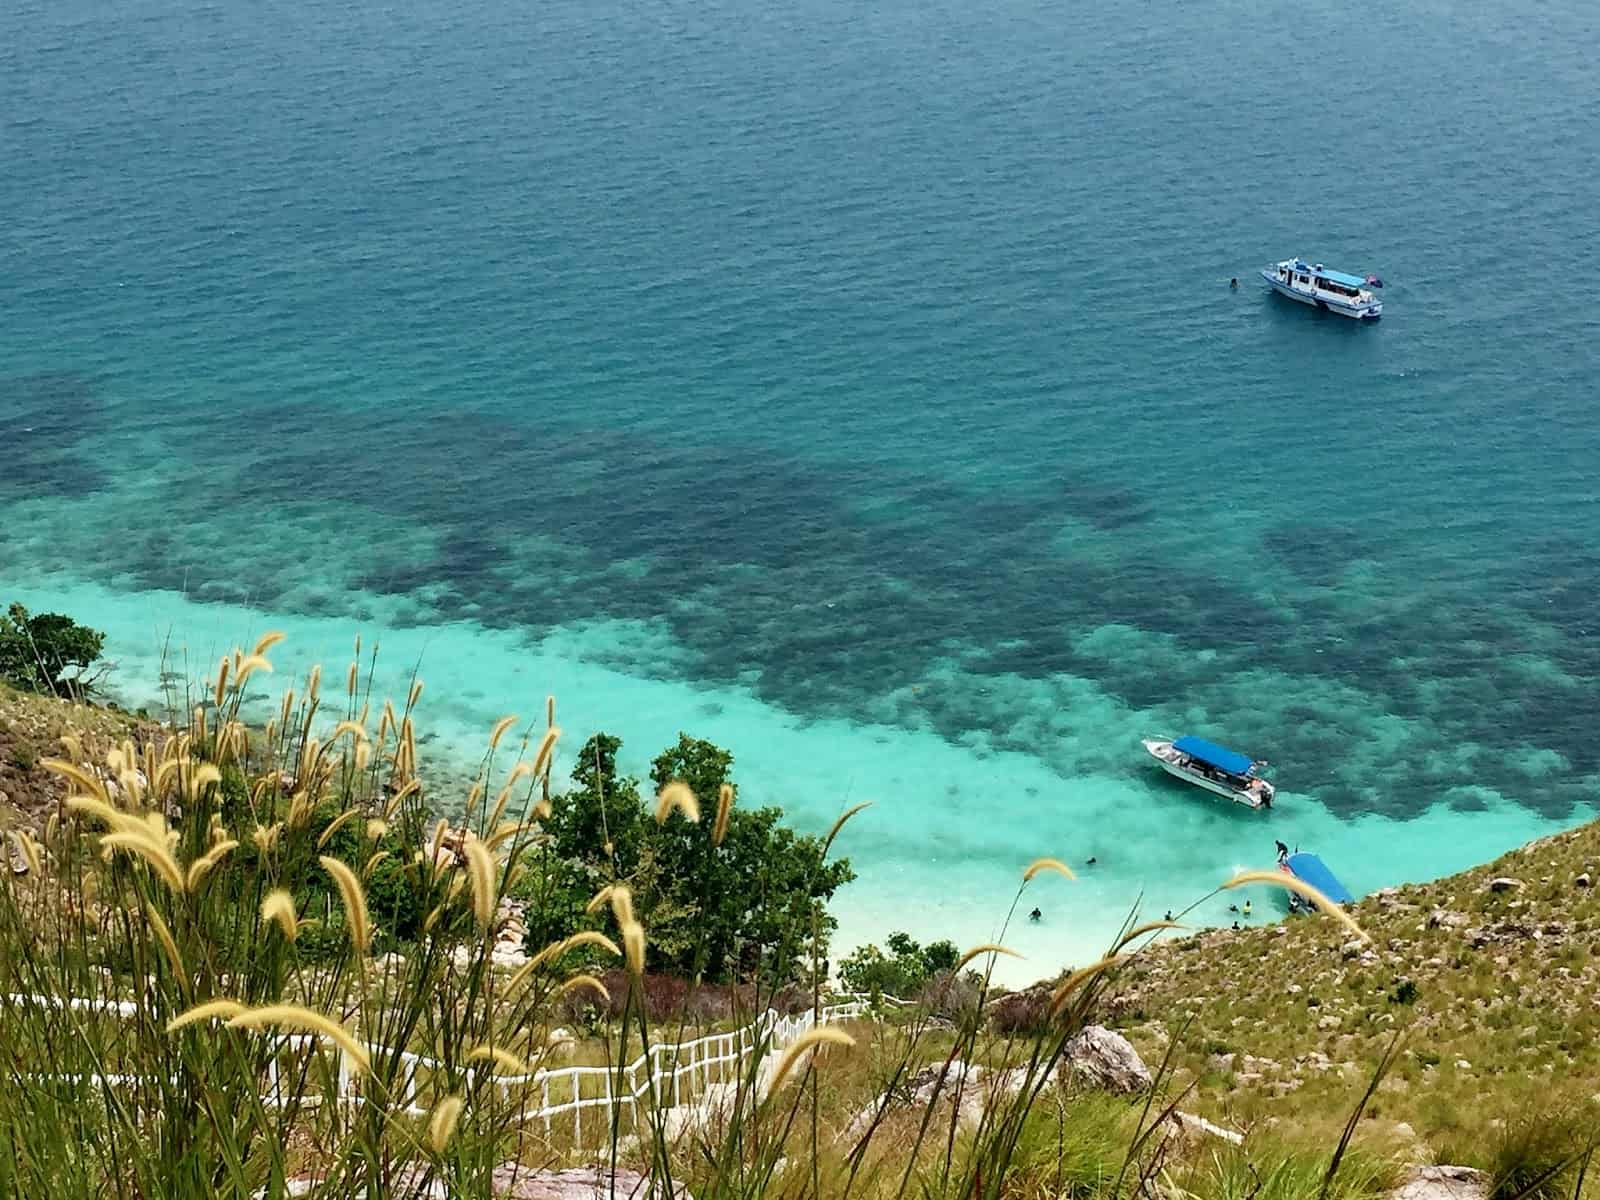 Pulau Rawa Activities: Hiking